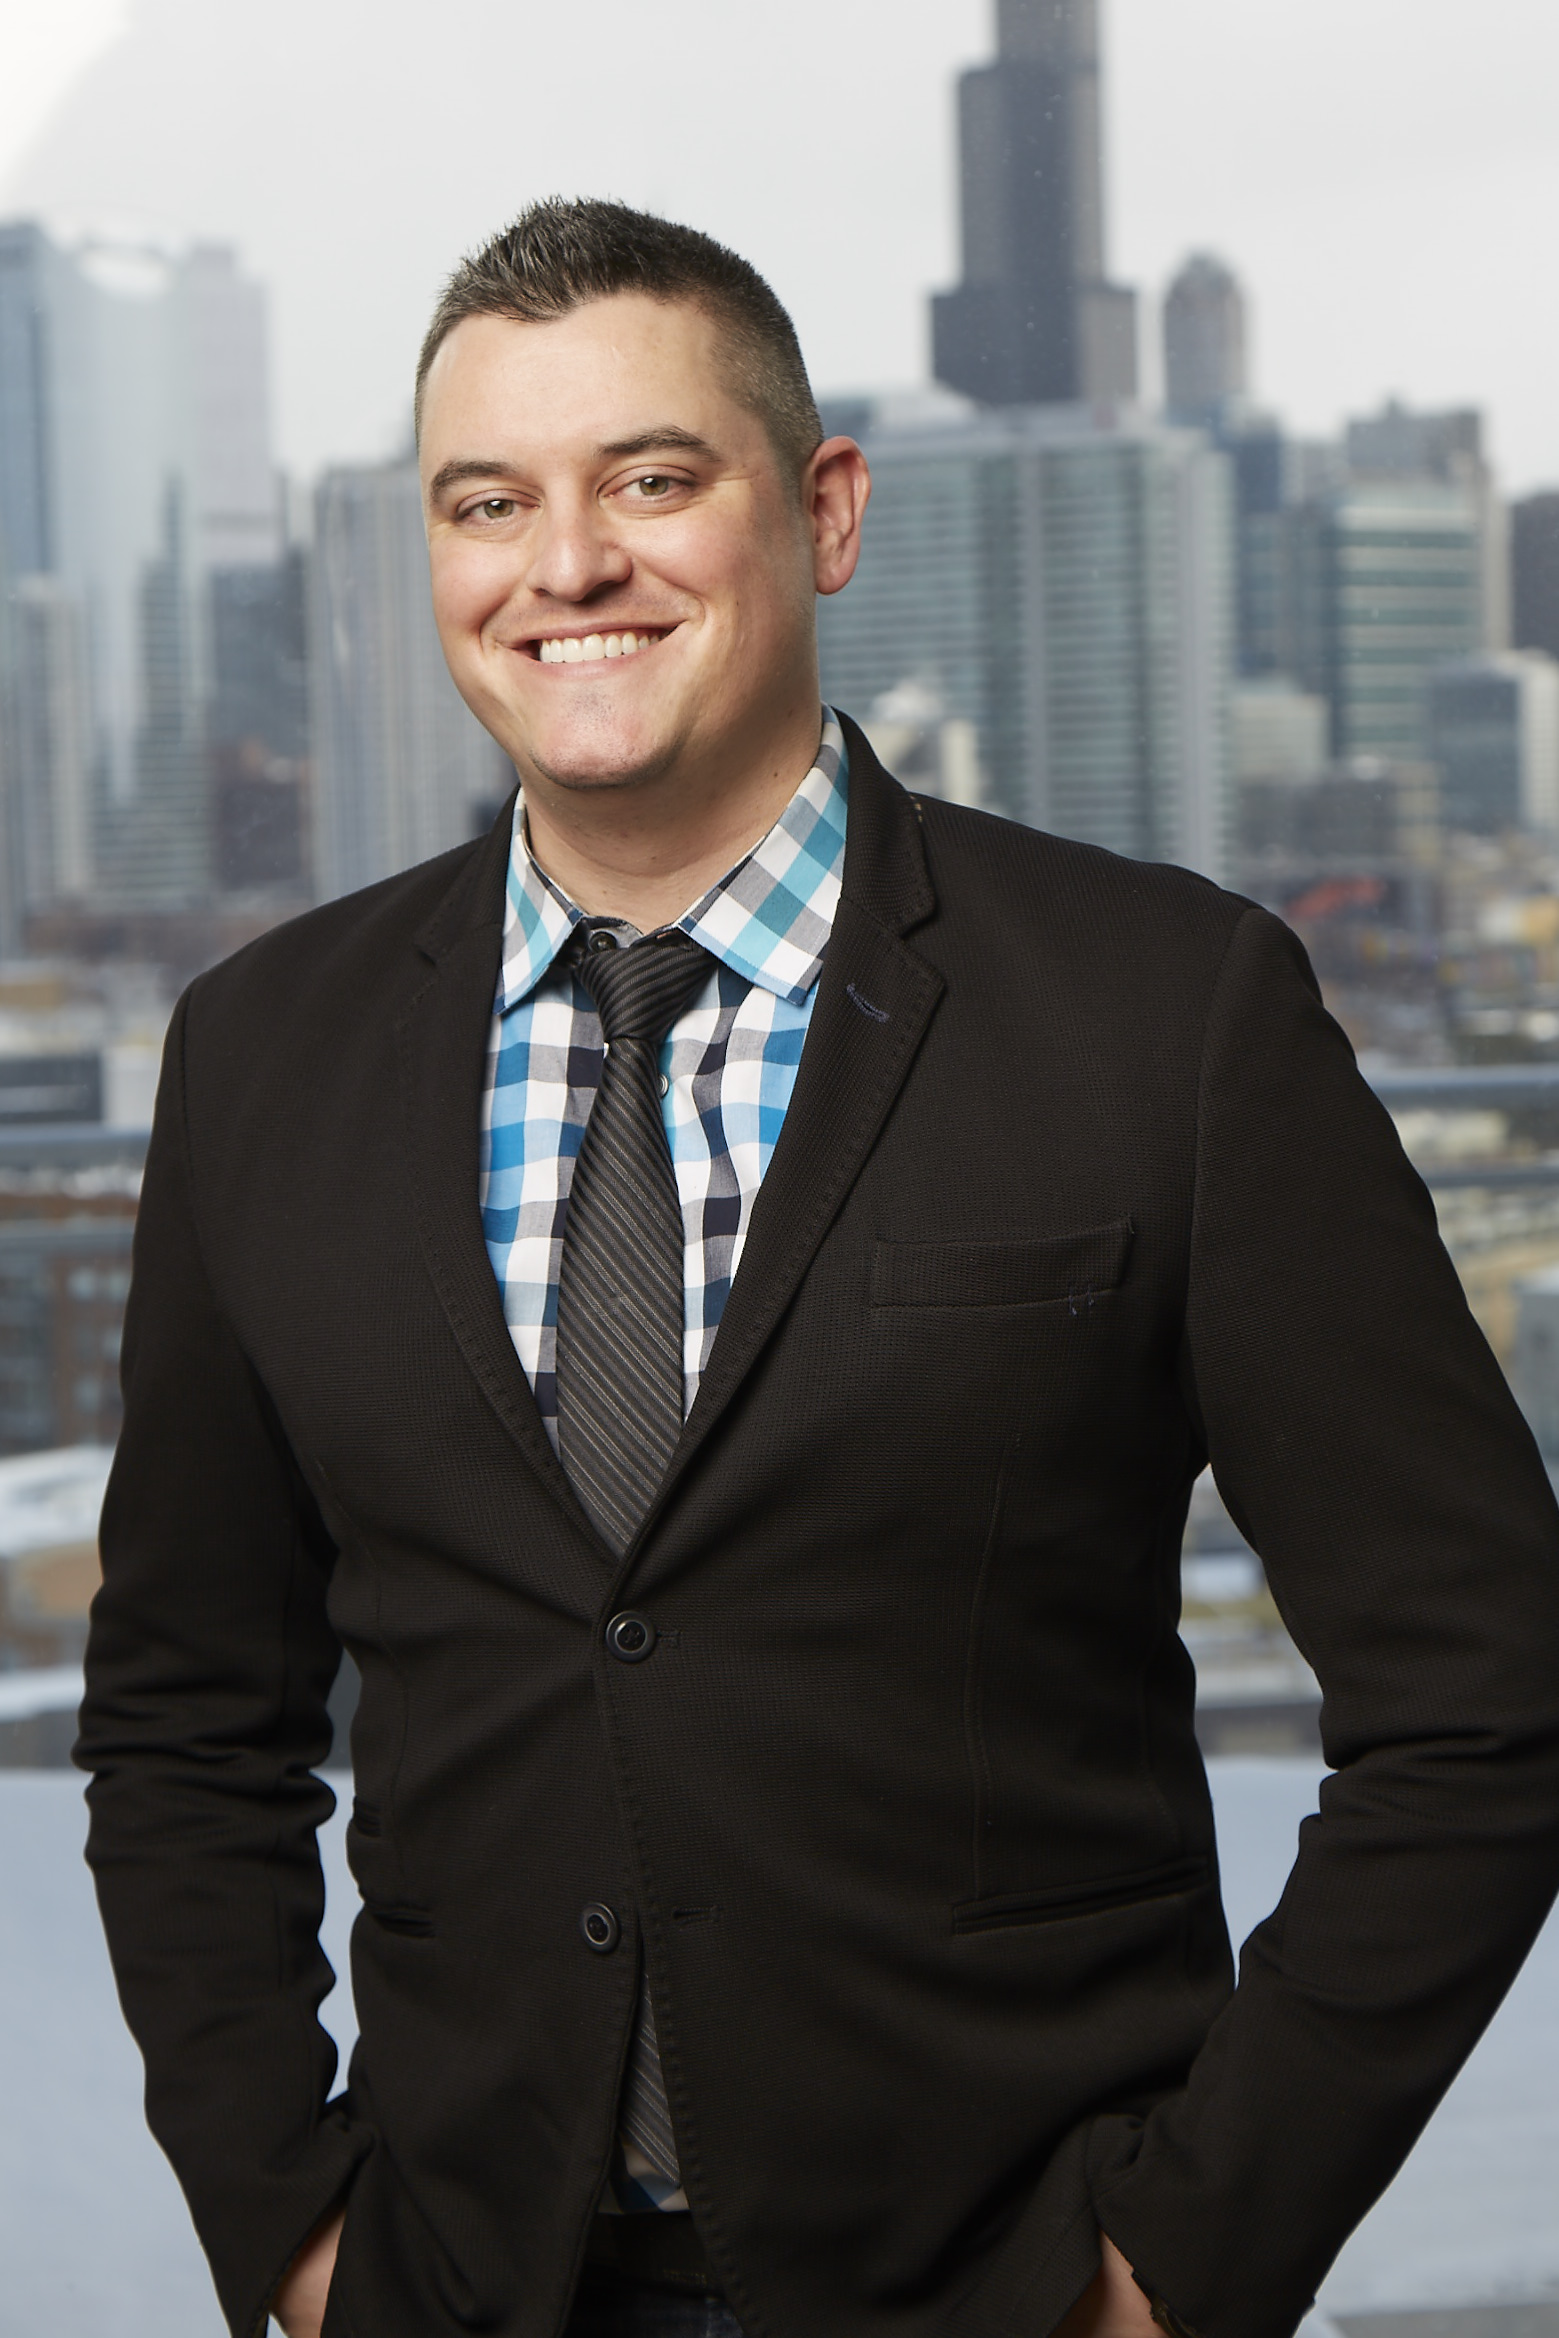 Kurt Bowser - Kurt is our Gold Coast & Old Town specialist! He's been in Sales for many years and his biggest strength is listening to client needs. He always arrives early, stays late, and follows up to make sure clients are completely satisfied. We hope you have a chance to work with him, you won't be let down!